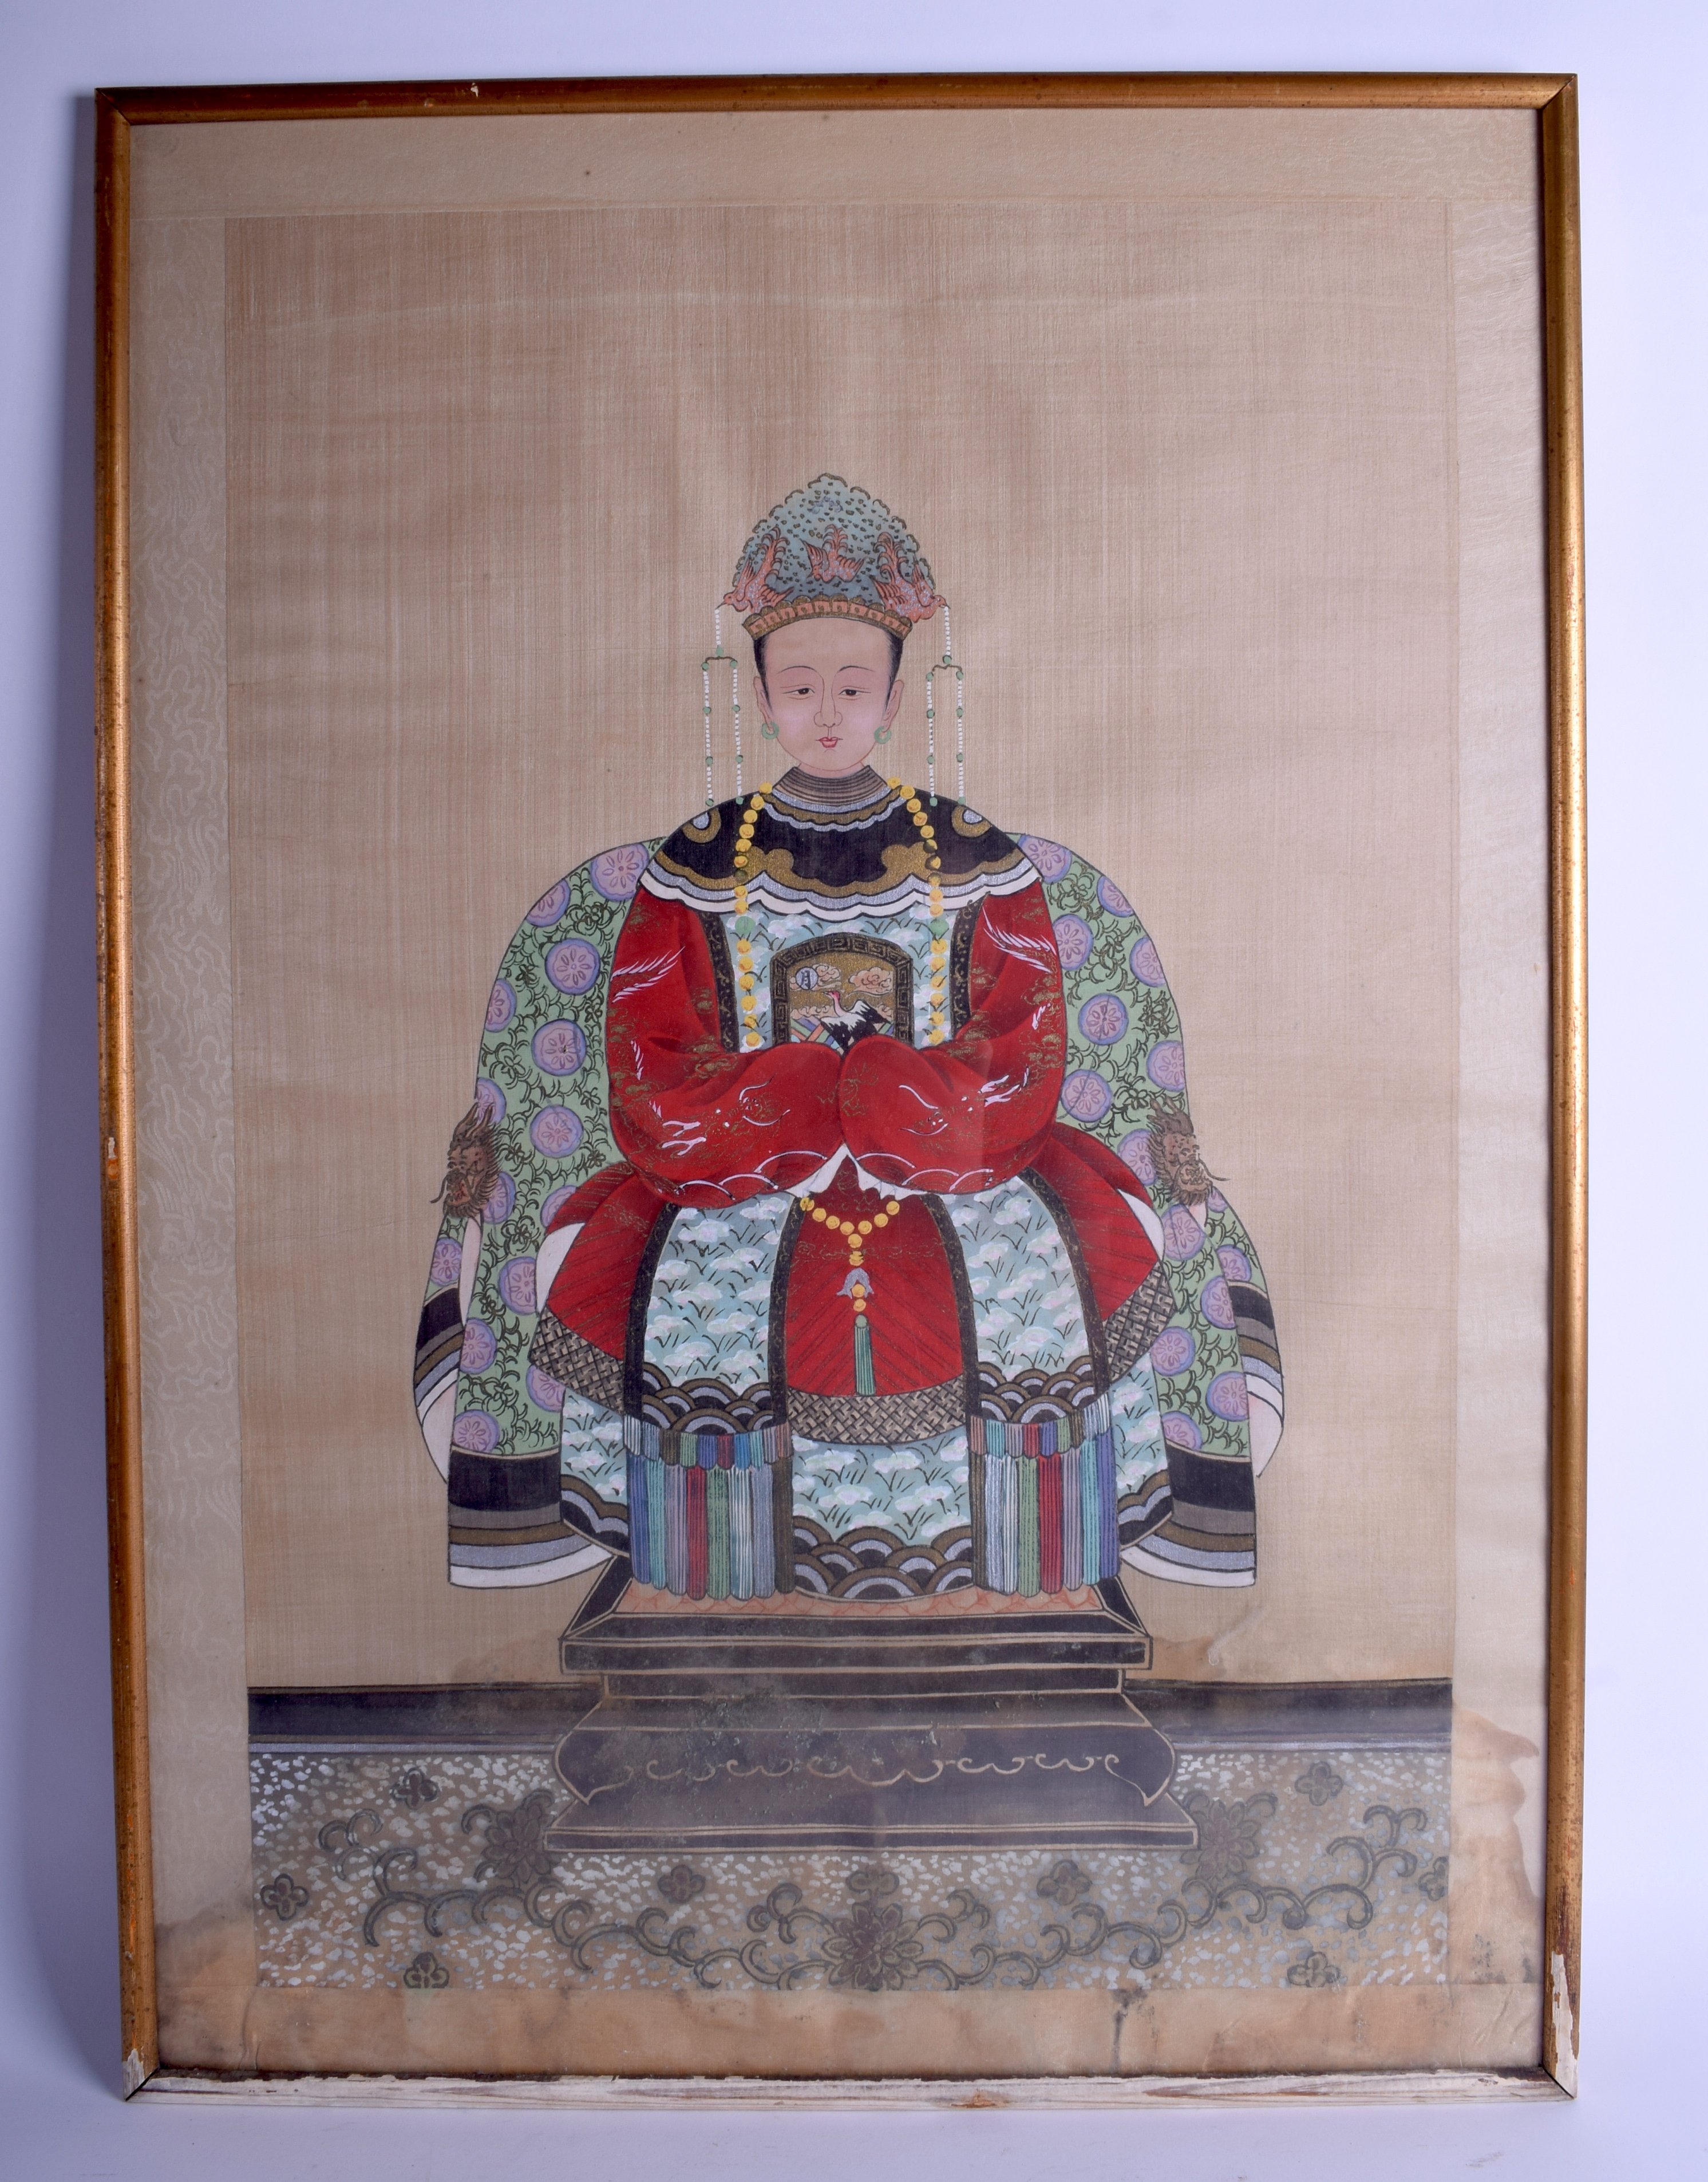 Lot 1642 - A CHINESE FRAMED ANCESTRAL WATERCOLOUR. Image 68 cm x 40 cm.